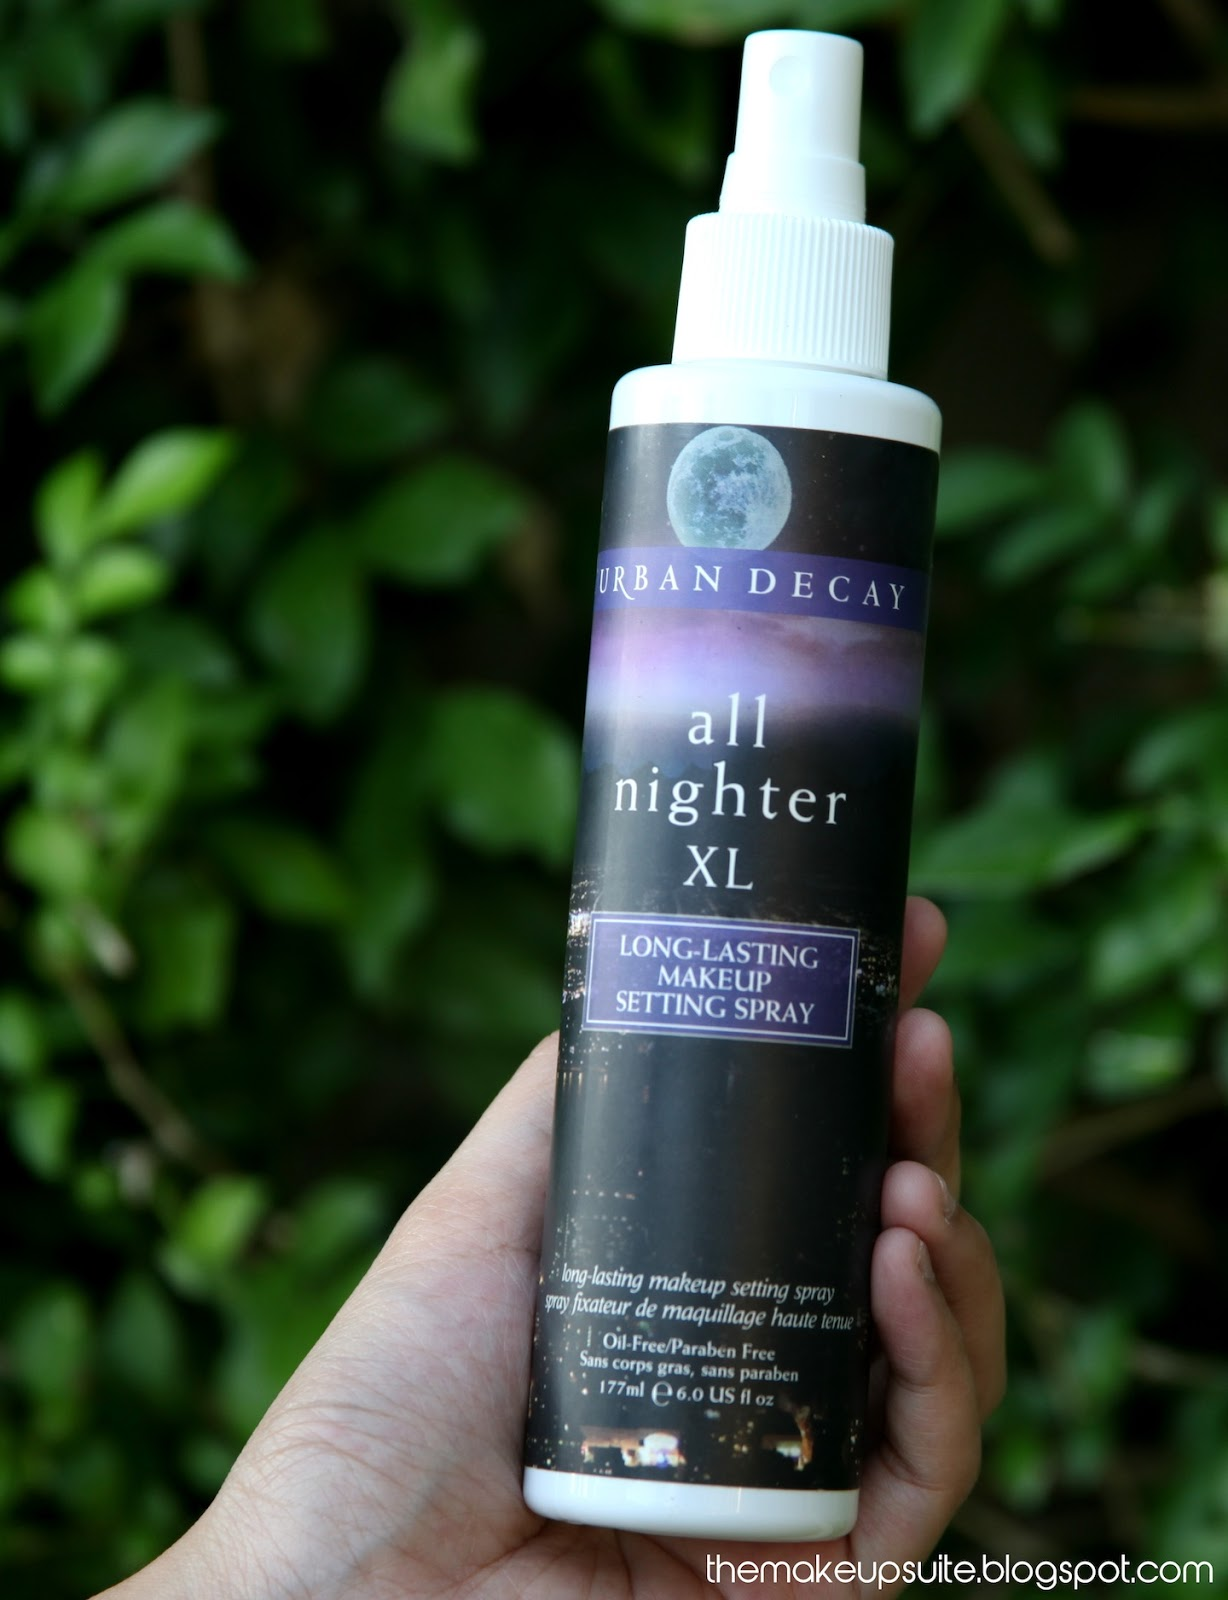 ... Suite: Urban Decay All Nighter Long-lasting Makeup Setting Spray